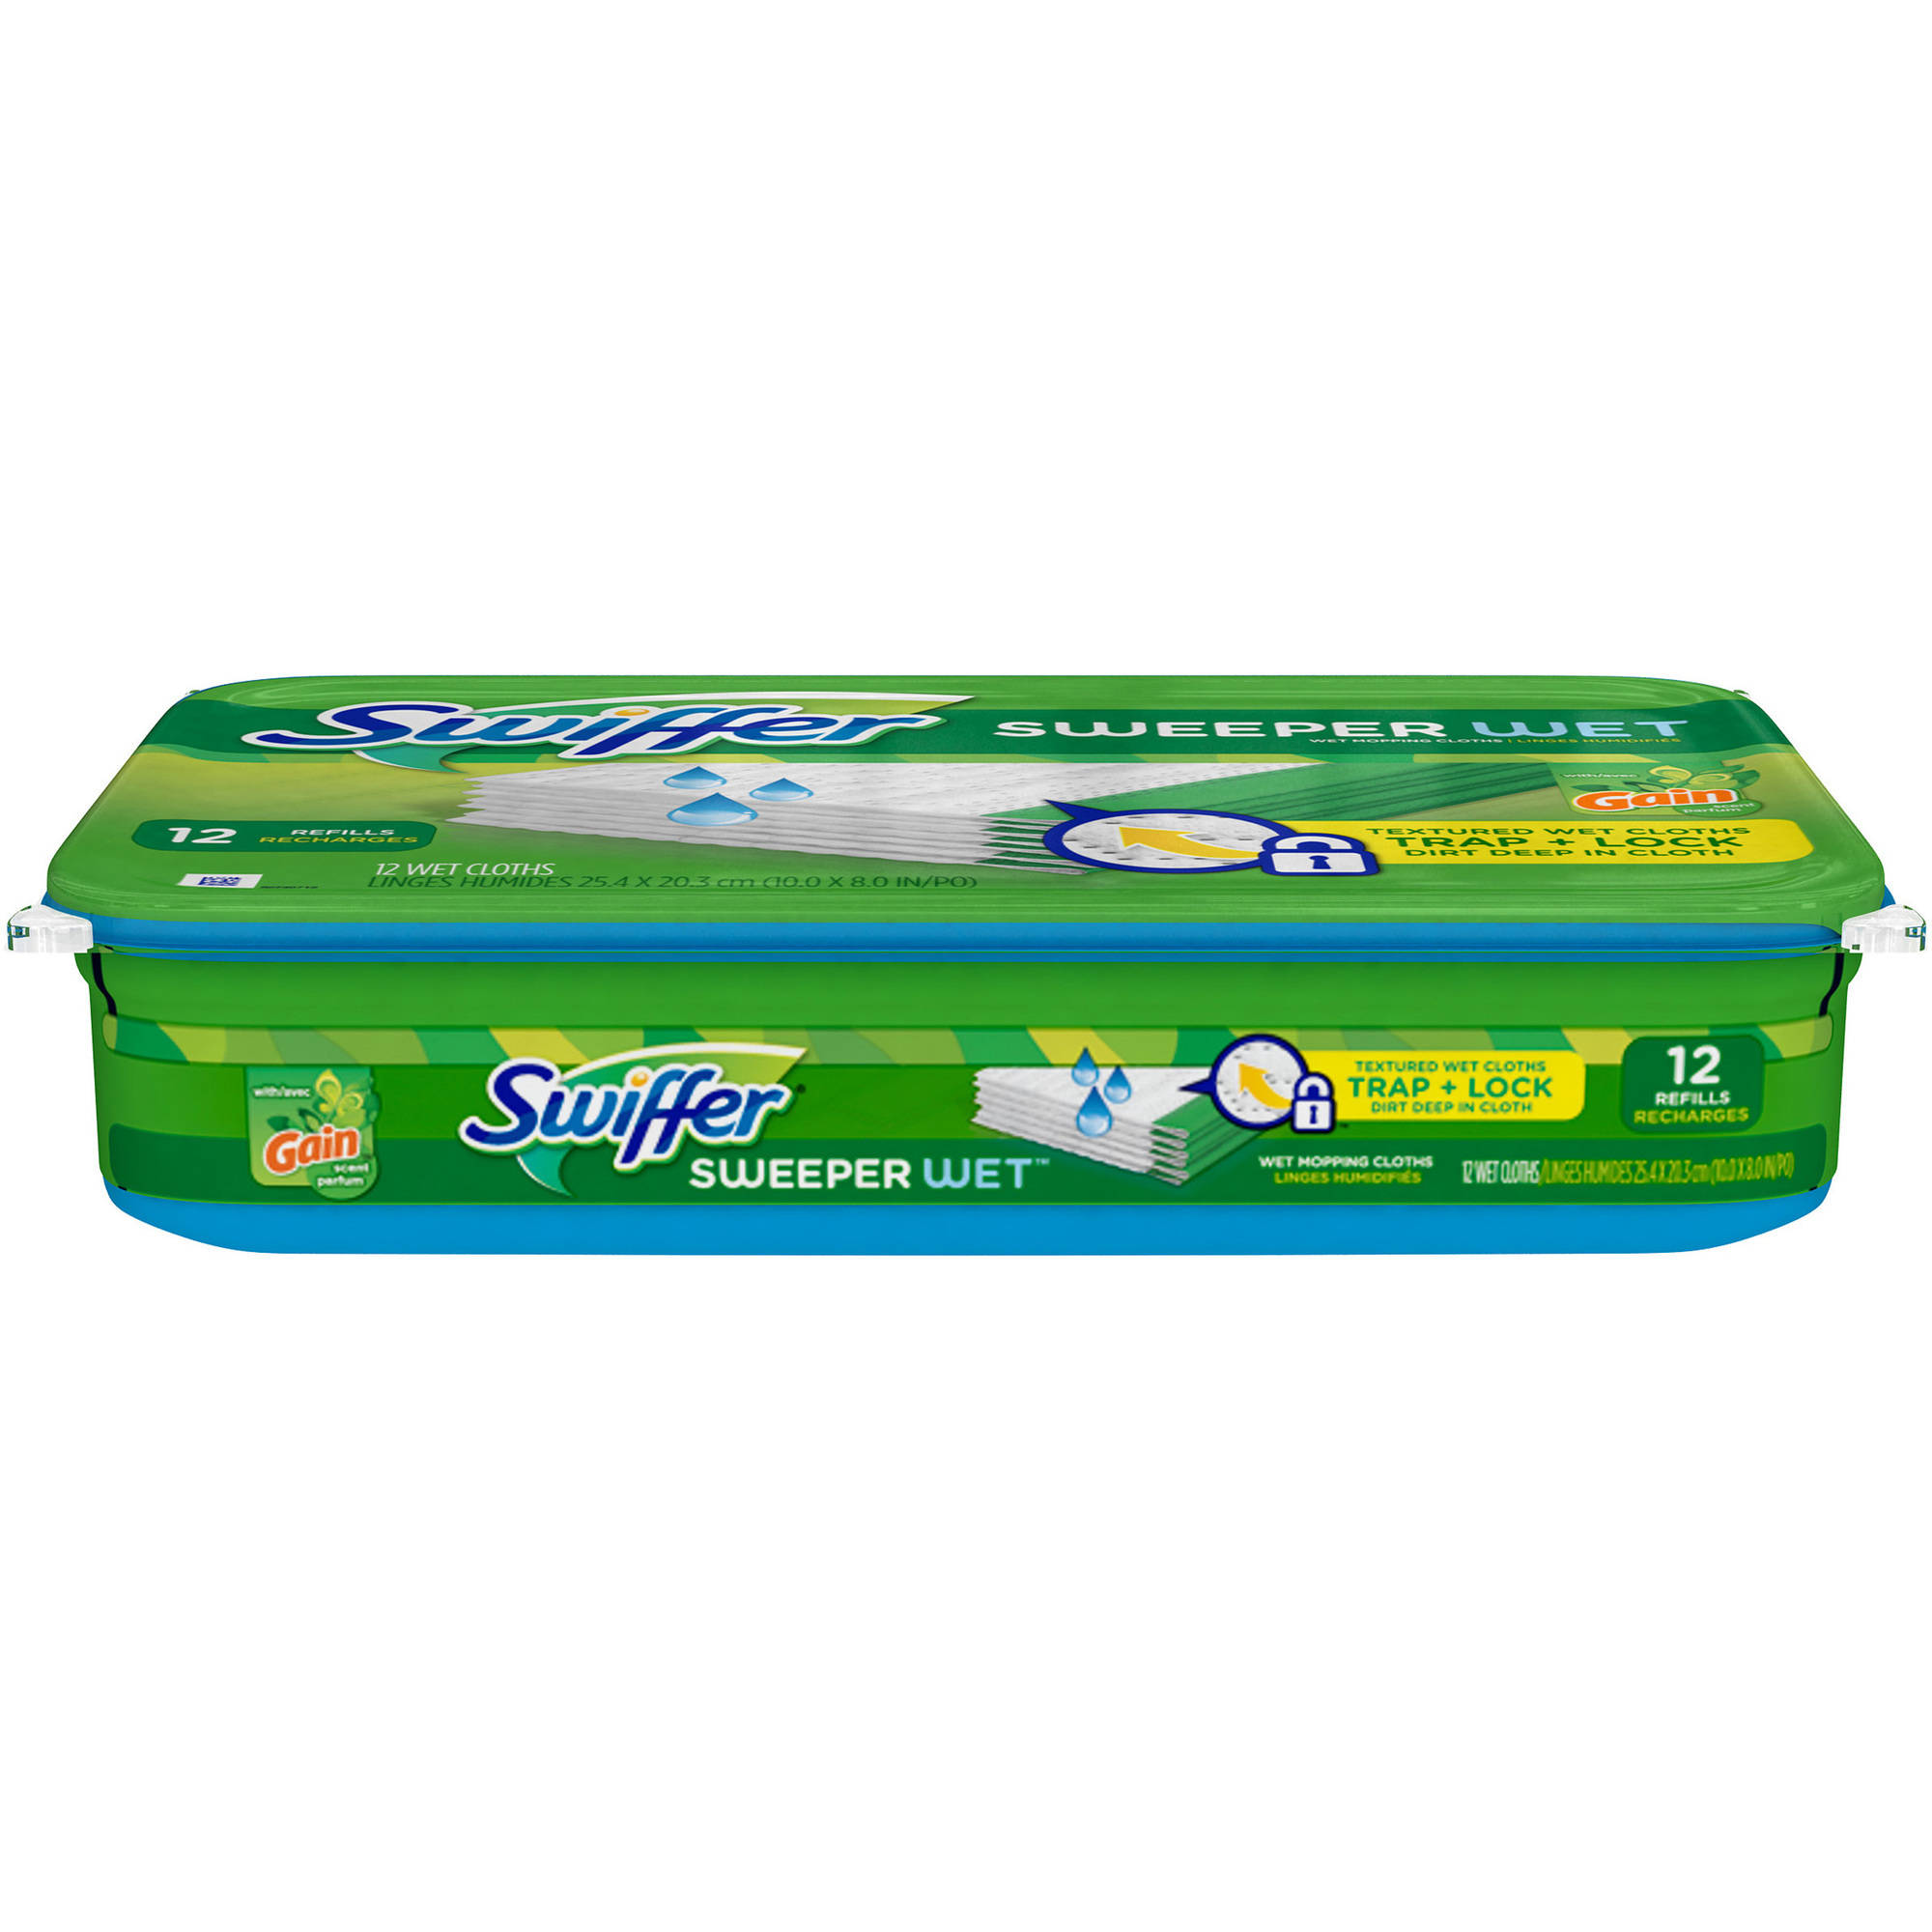 Swiffer Sweeper Wet Mopping Pad Refills for Floor Mop, Gain Scent, 12 count